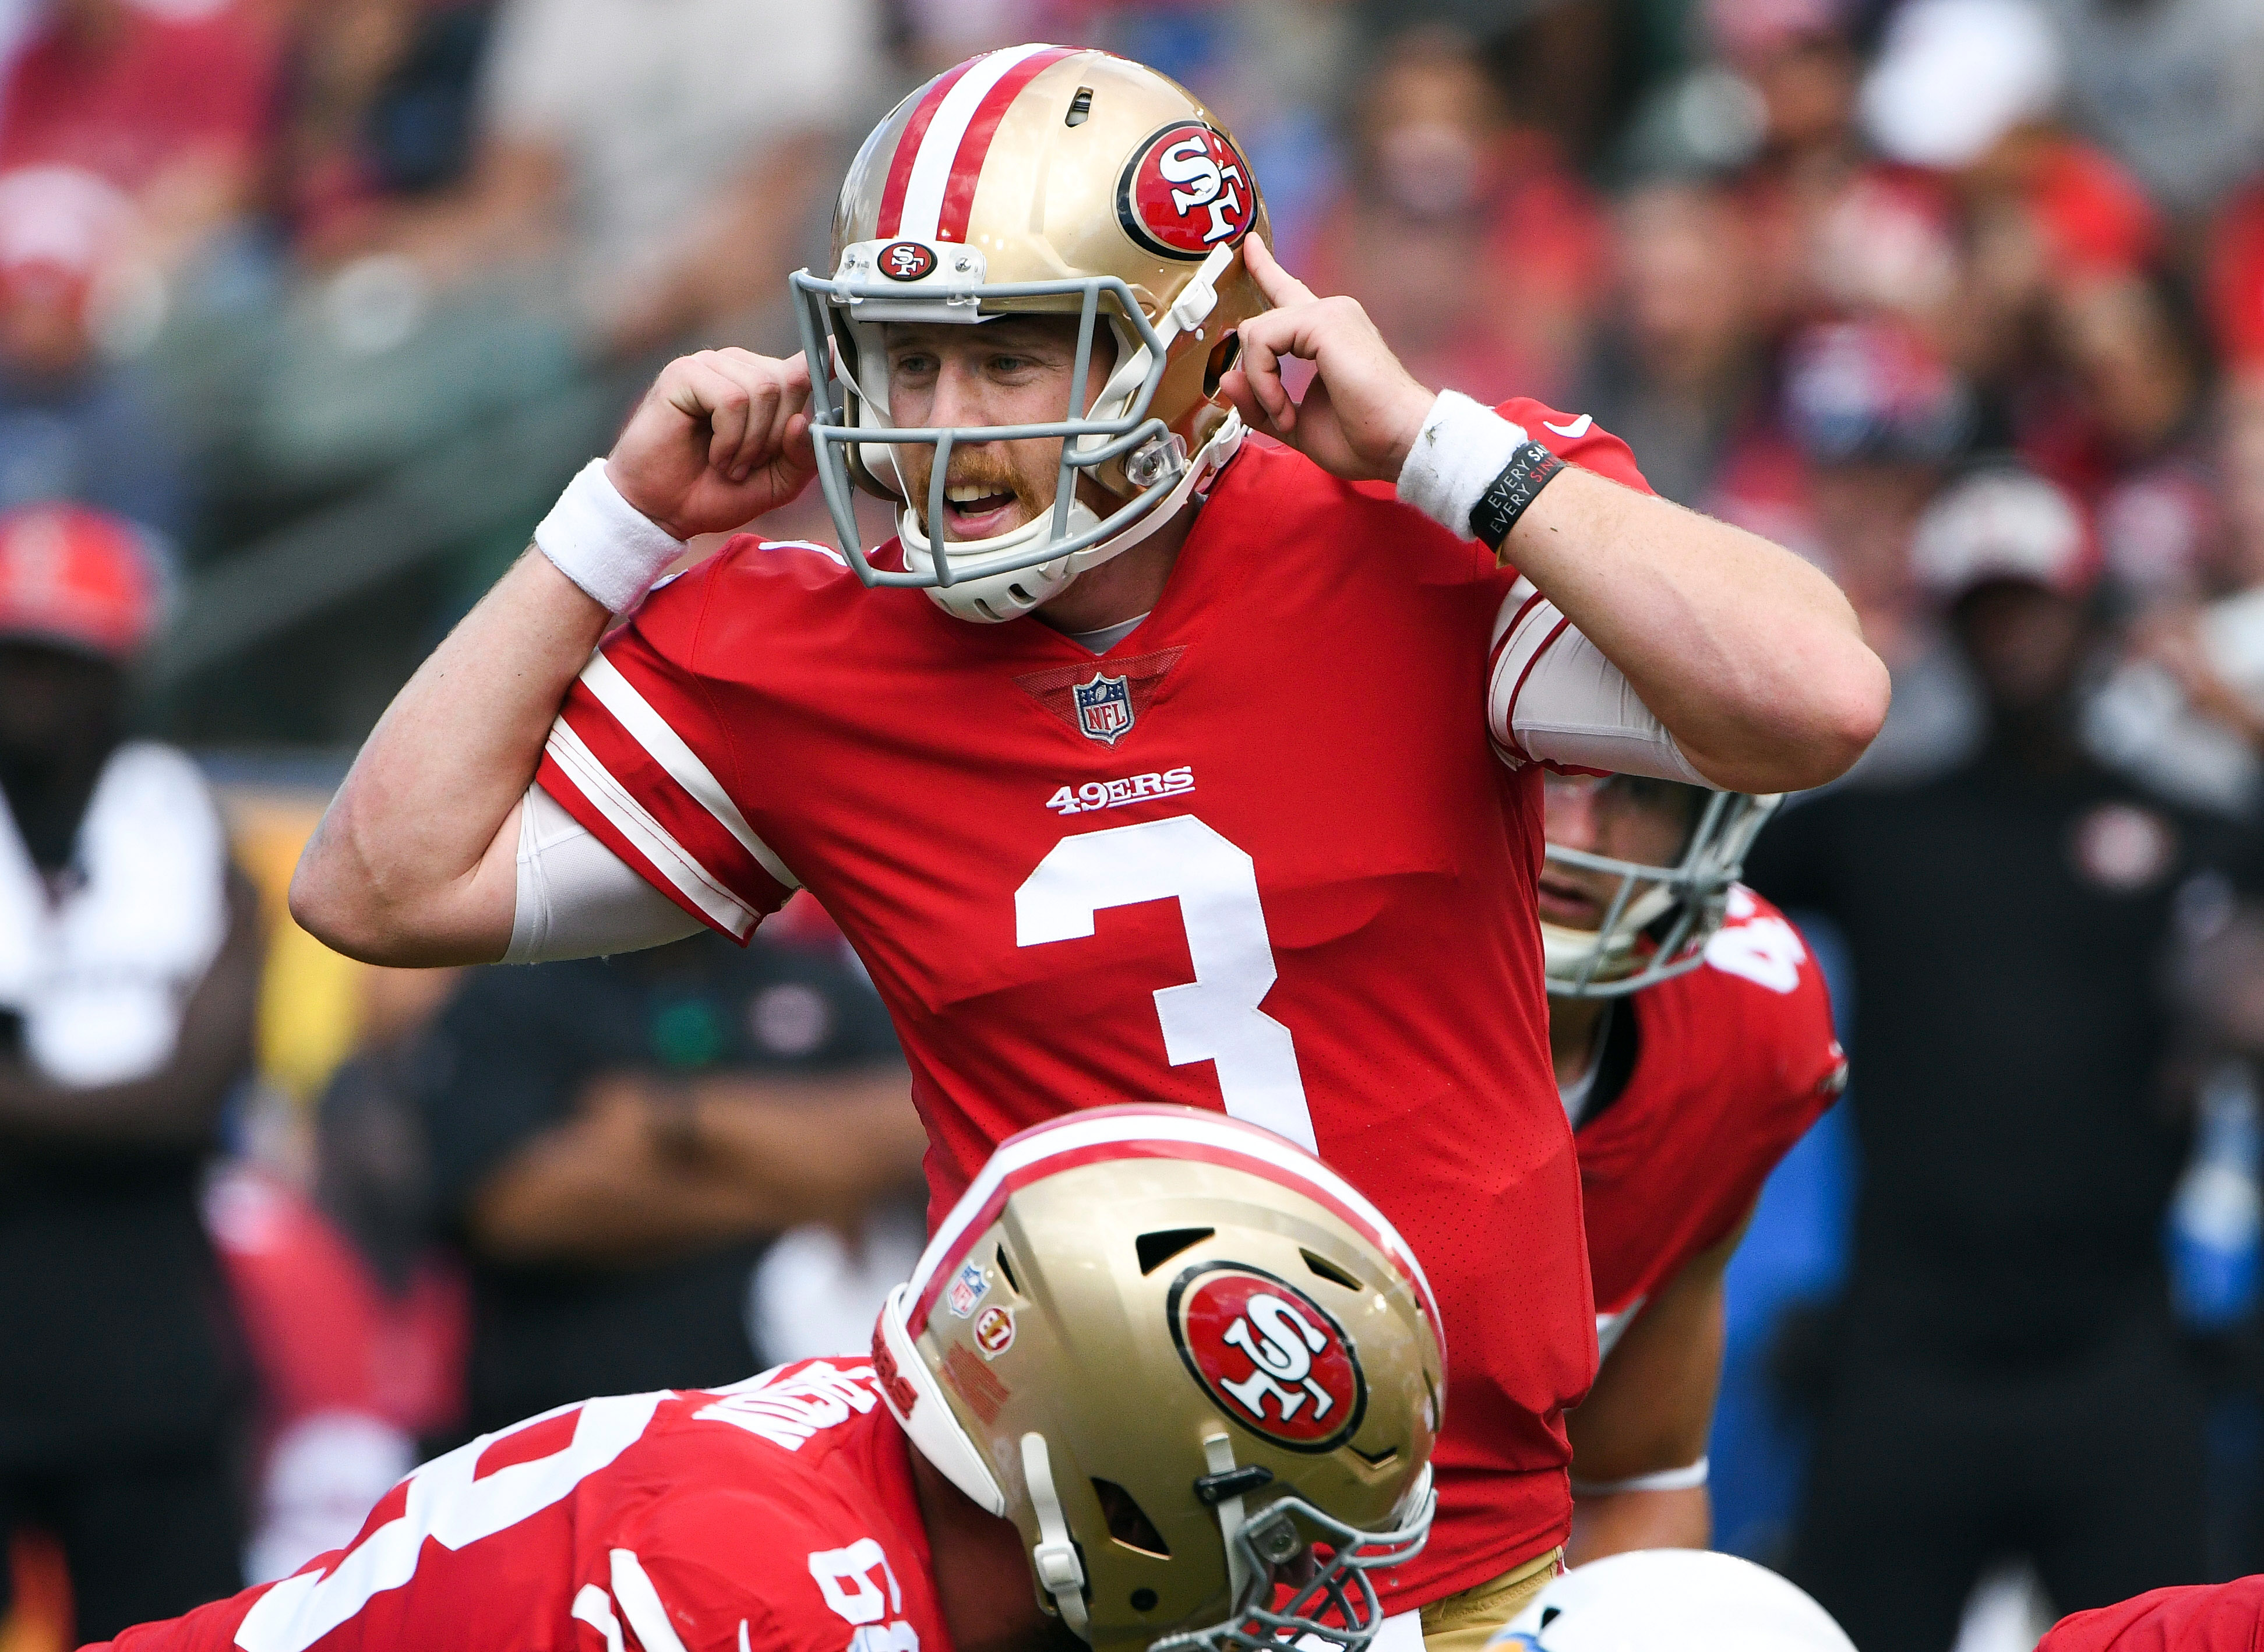 NFL: San Francisco 49ers at Los Angeles Chargers